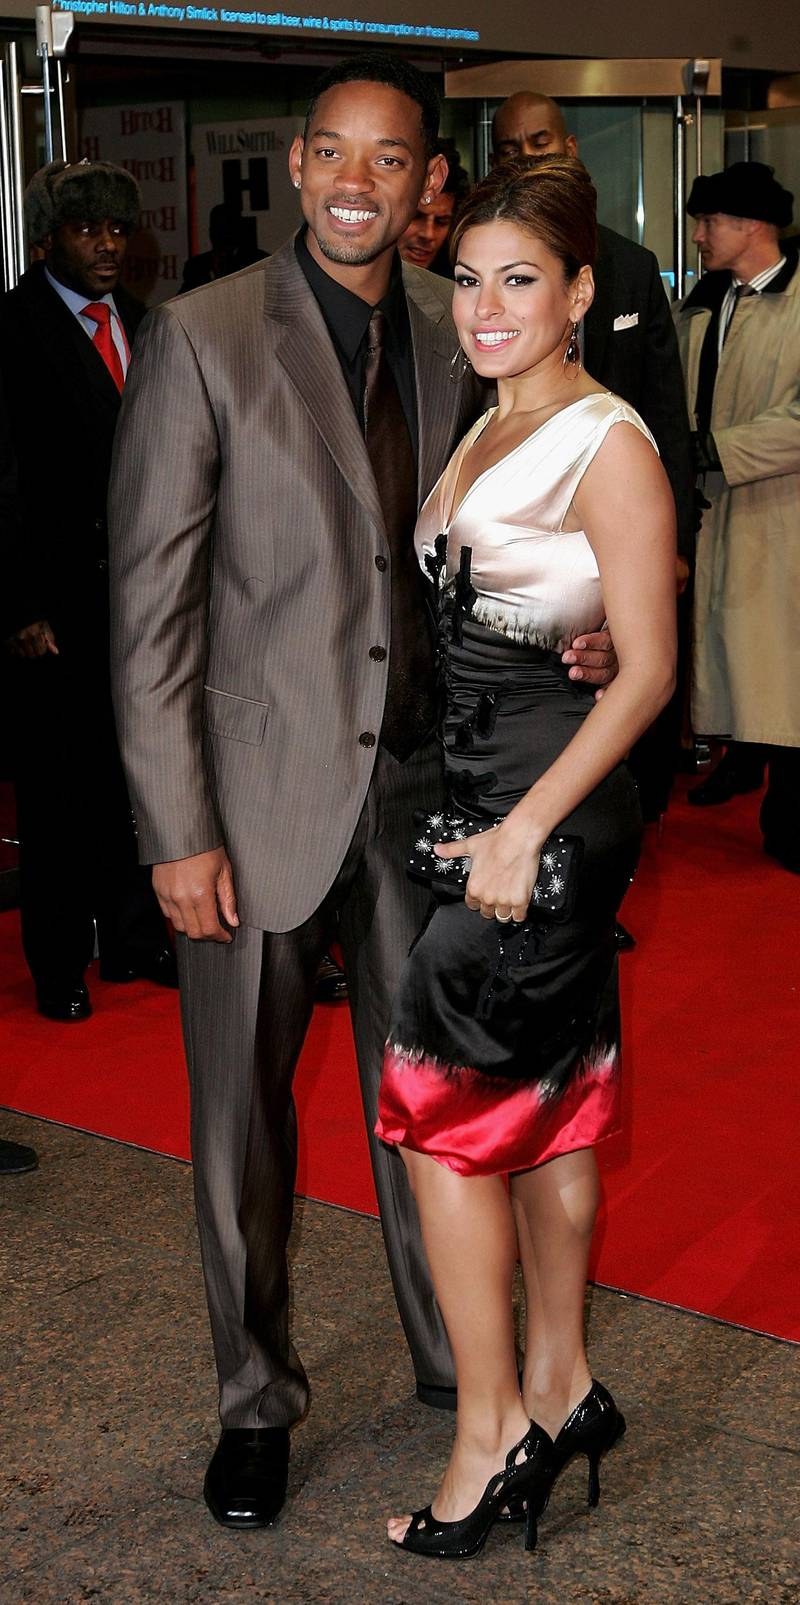 """LONDON - FEBRUARY 22:  Actors Will Smith and Eva Mendes arrive at the """"Hitch"""" UK Premiere at Odeon Leicester Square on February 22, 2005 in London. (Photo by MJ Kim/Getty Images)"""